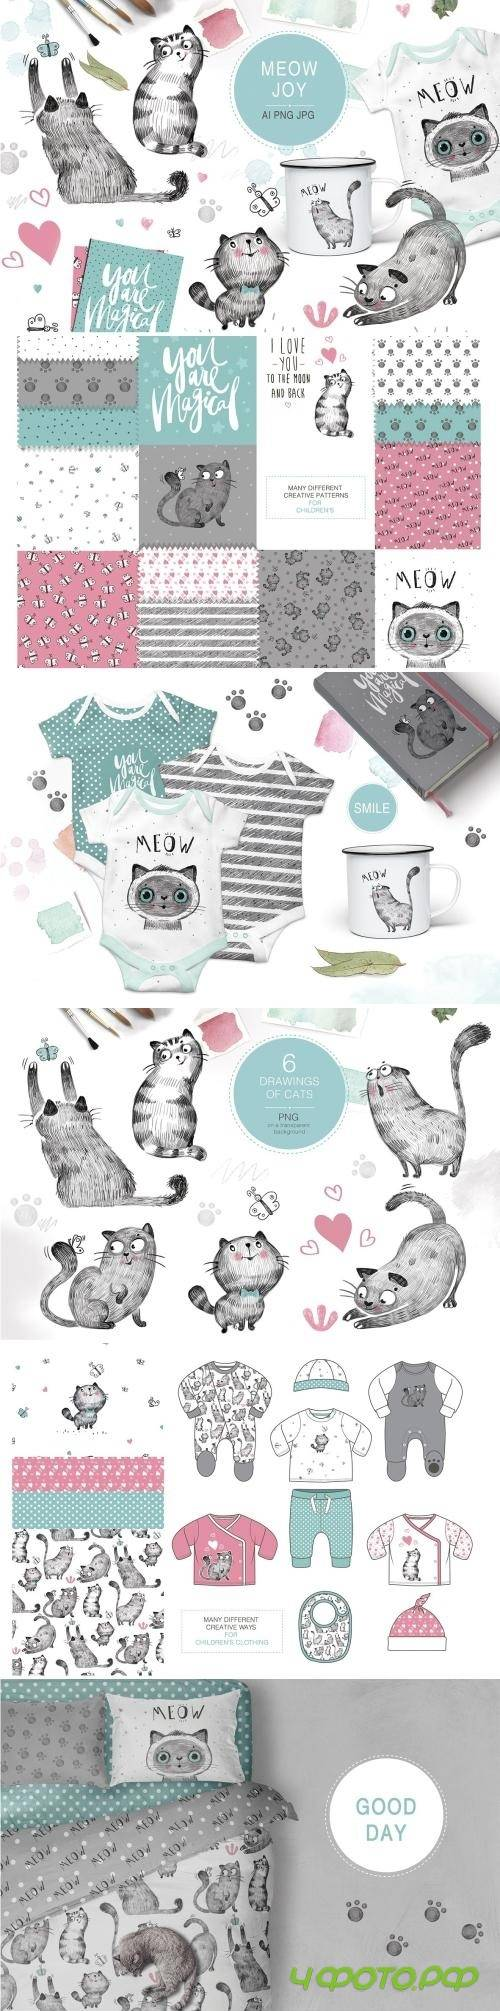 MEOW JOY (Graphic Pack) - 2316301